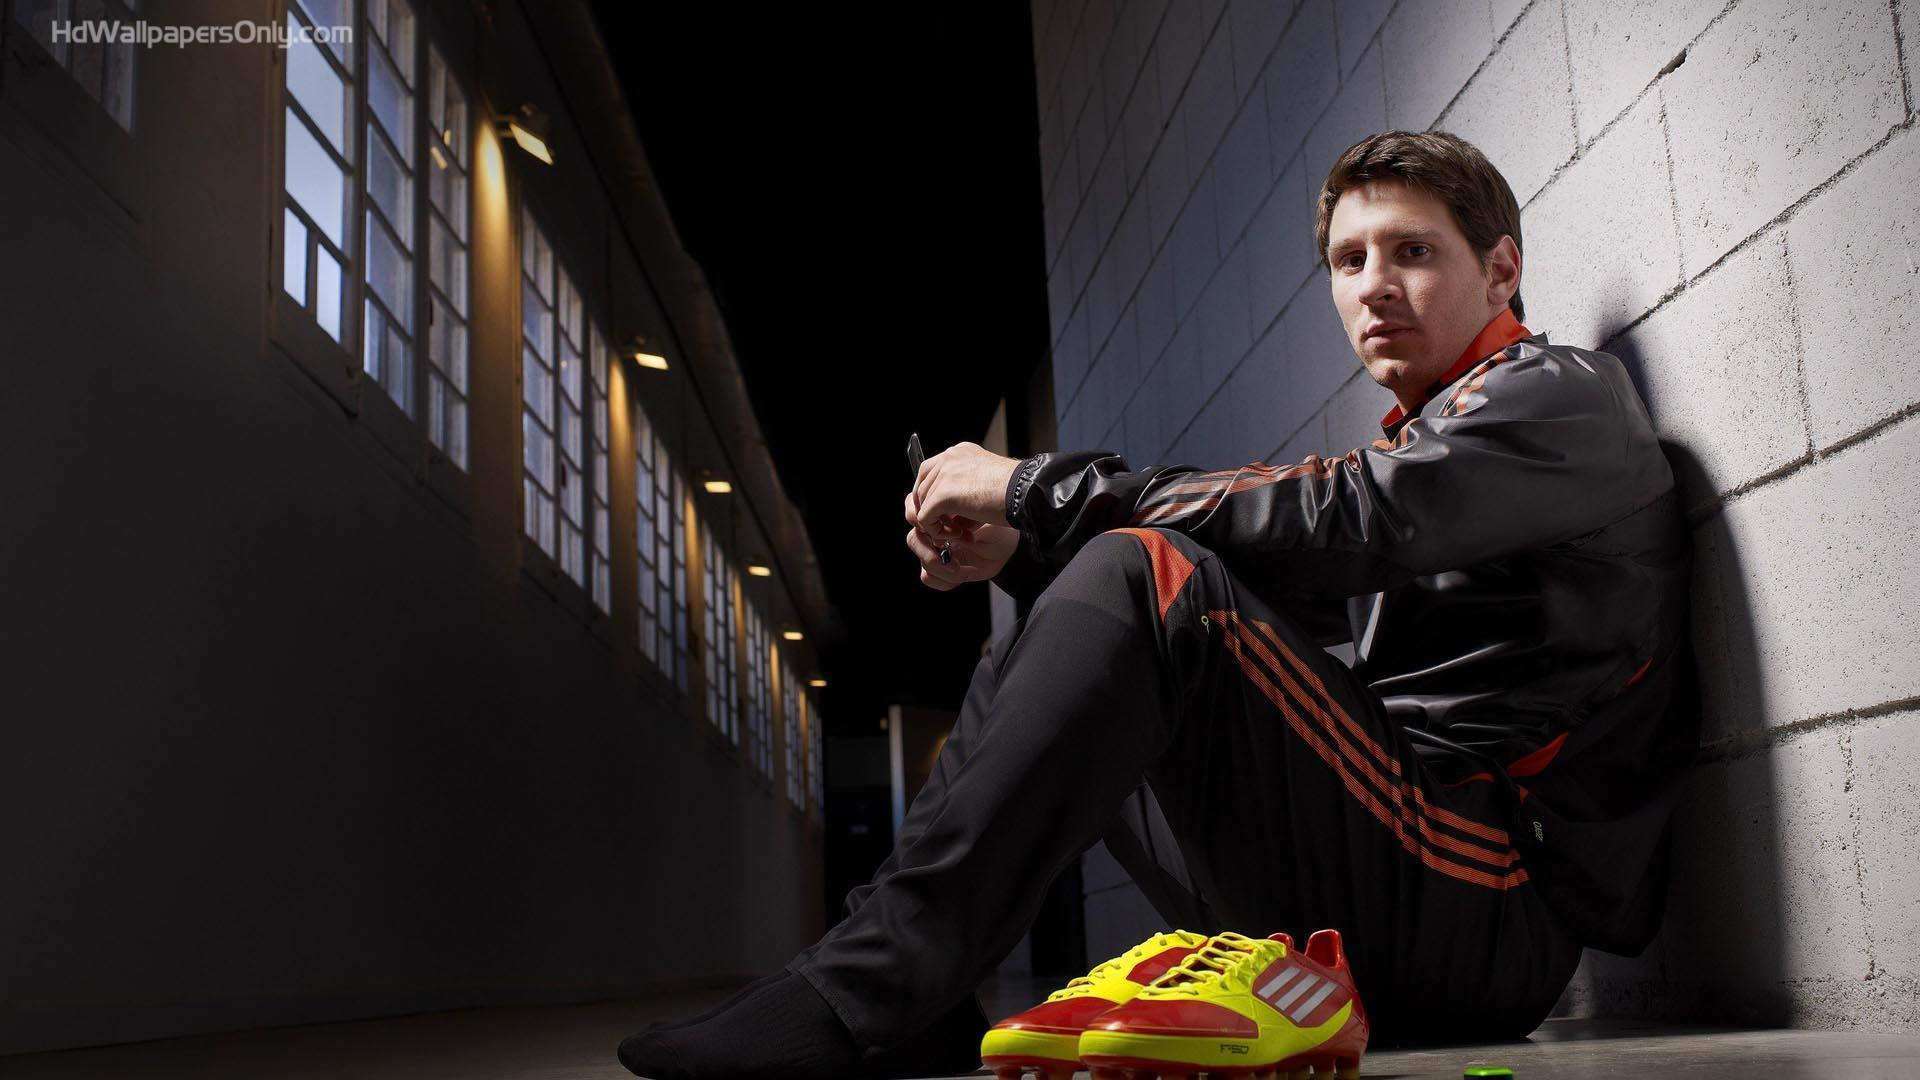 Lionel Messi HD Wallapers - HD Wallpapers OnlyHD Wallpapers Only